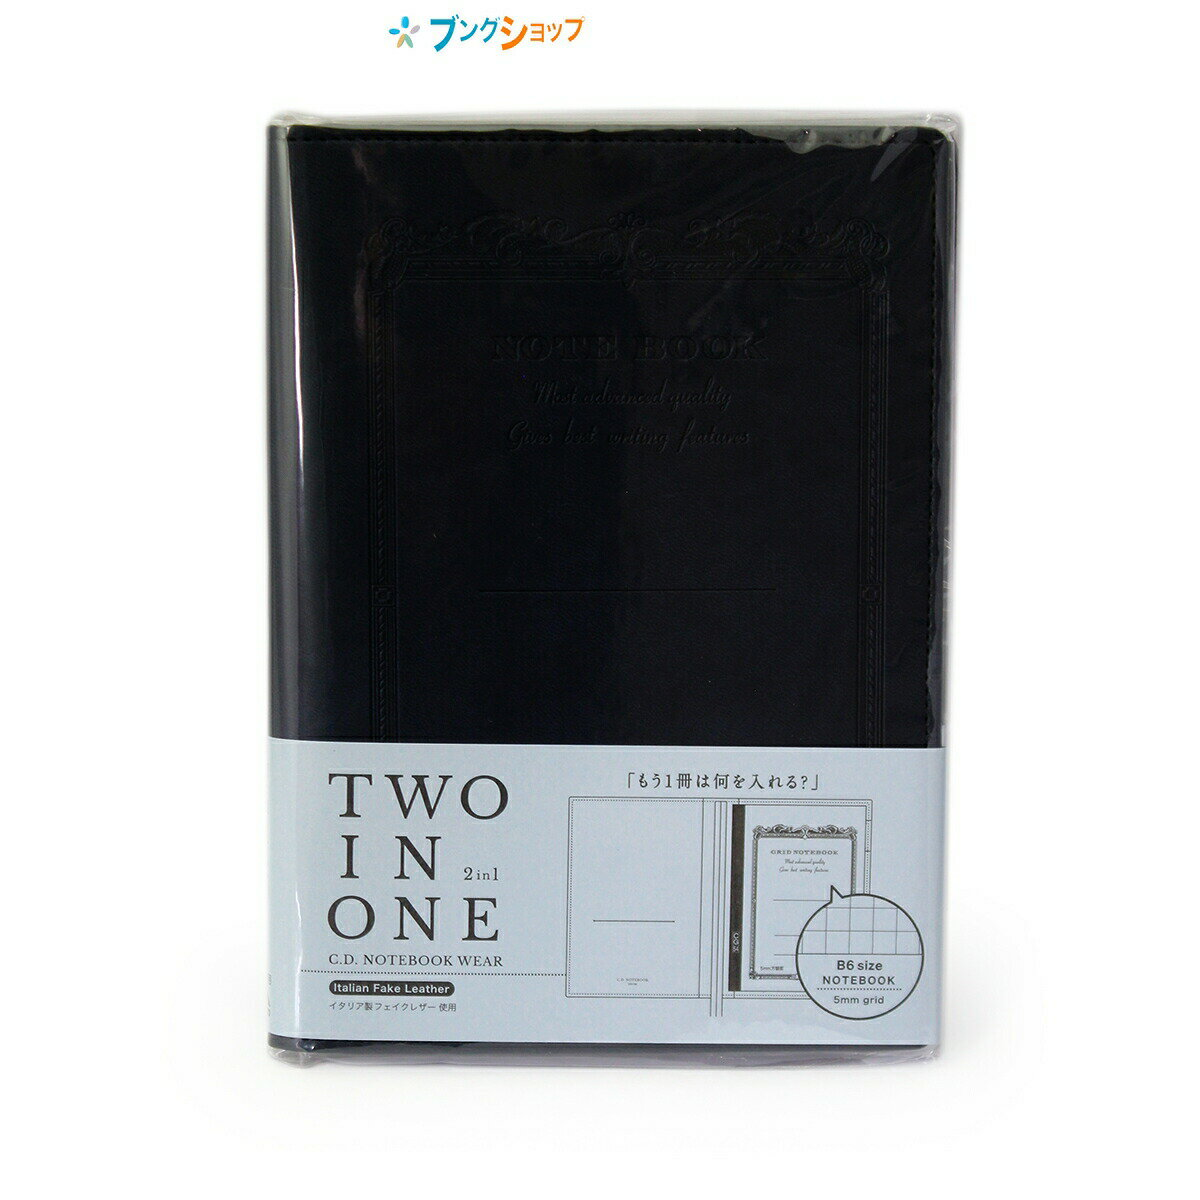 手帳・ノート, ノート  TWO IN ONE CD B6 CDV180-NV APICA